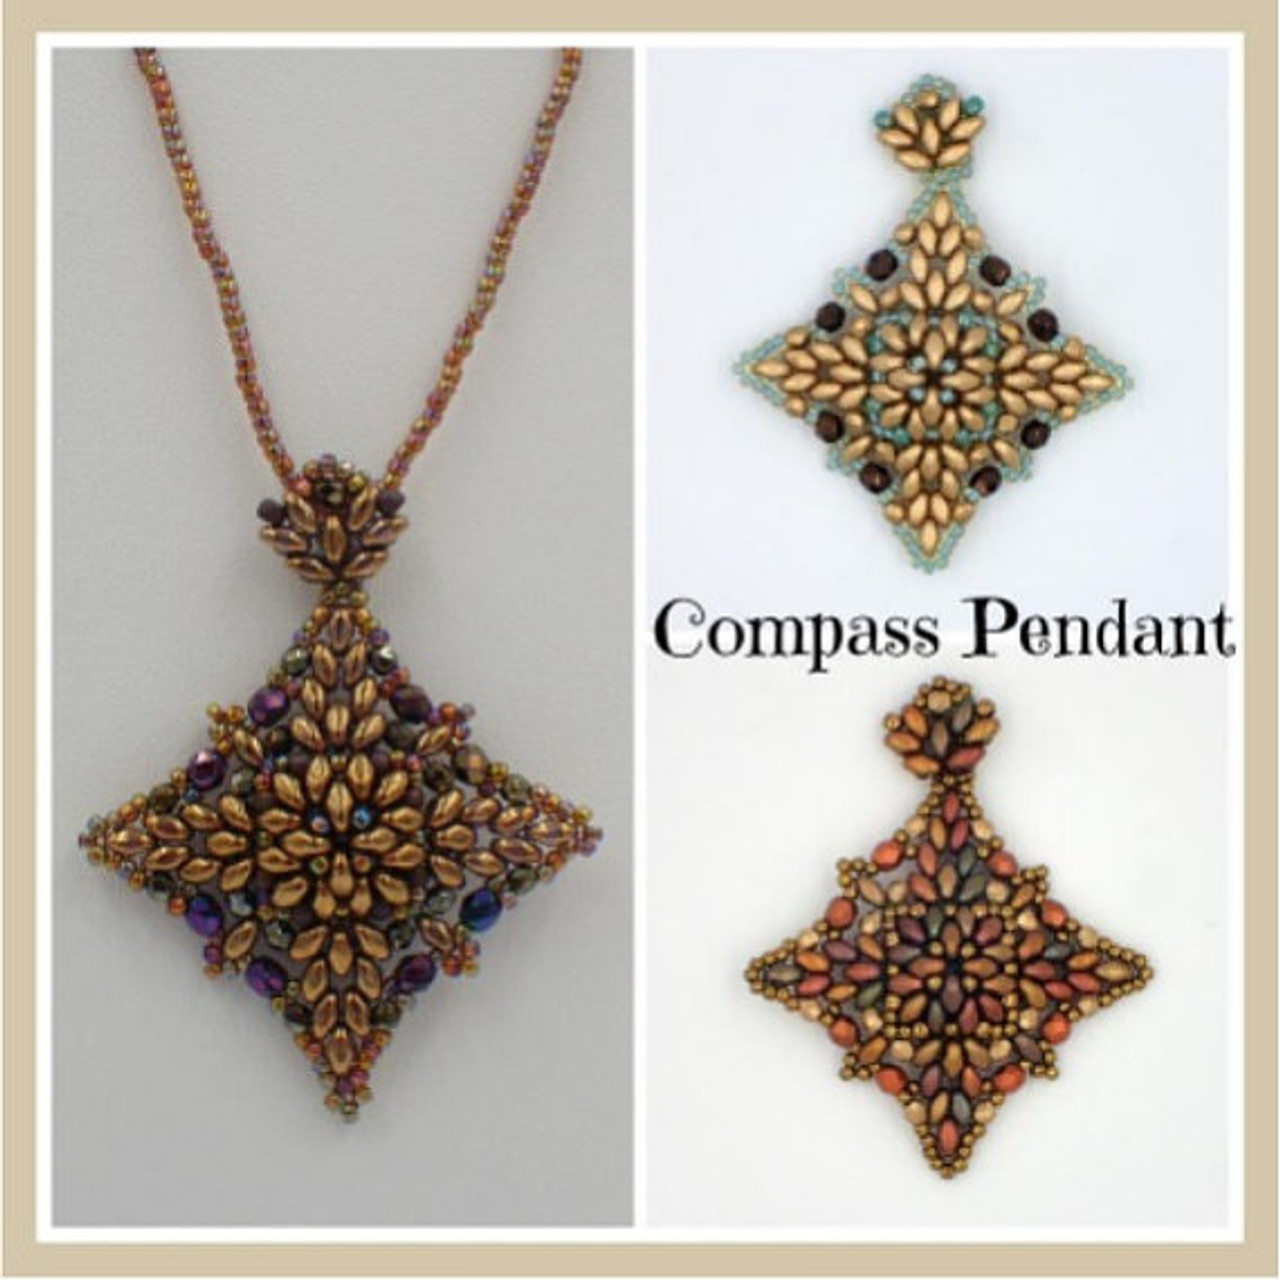 Compass Pendant PRINTED Pattern - Mailed to your home